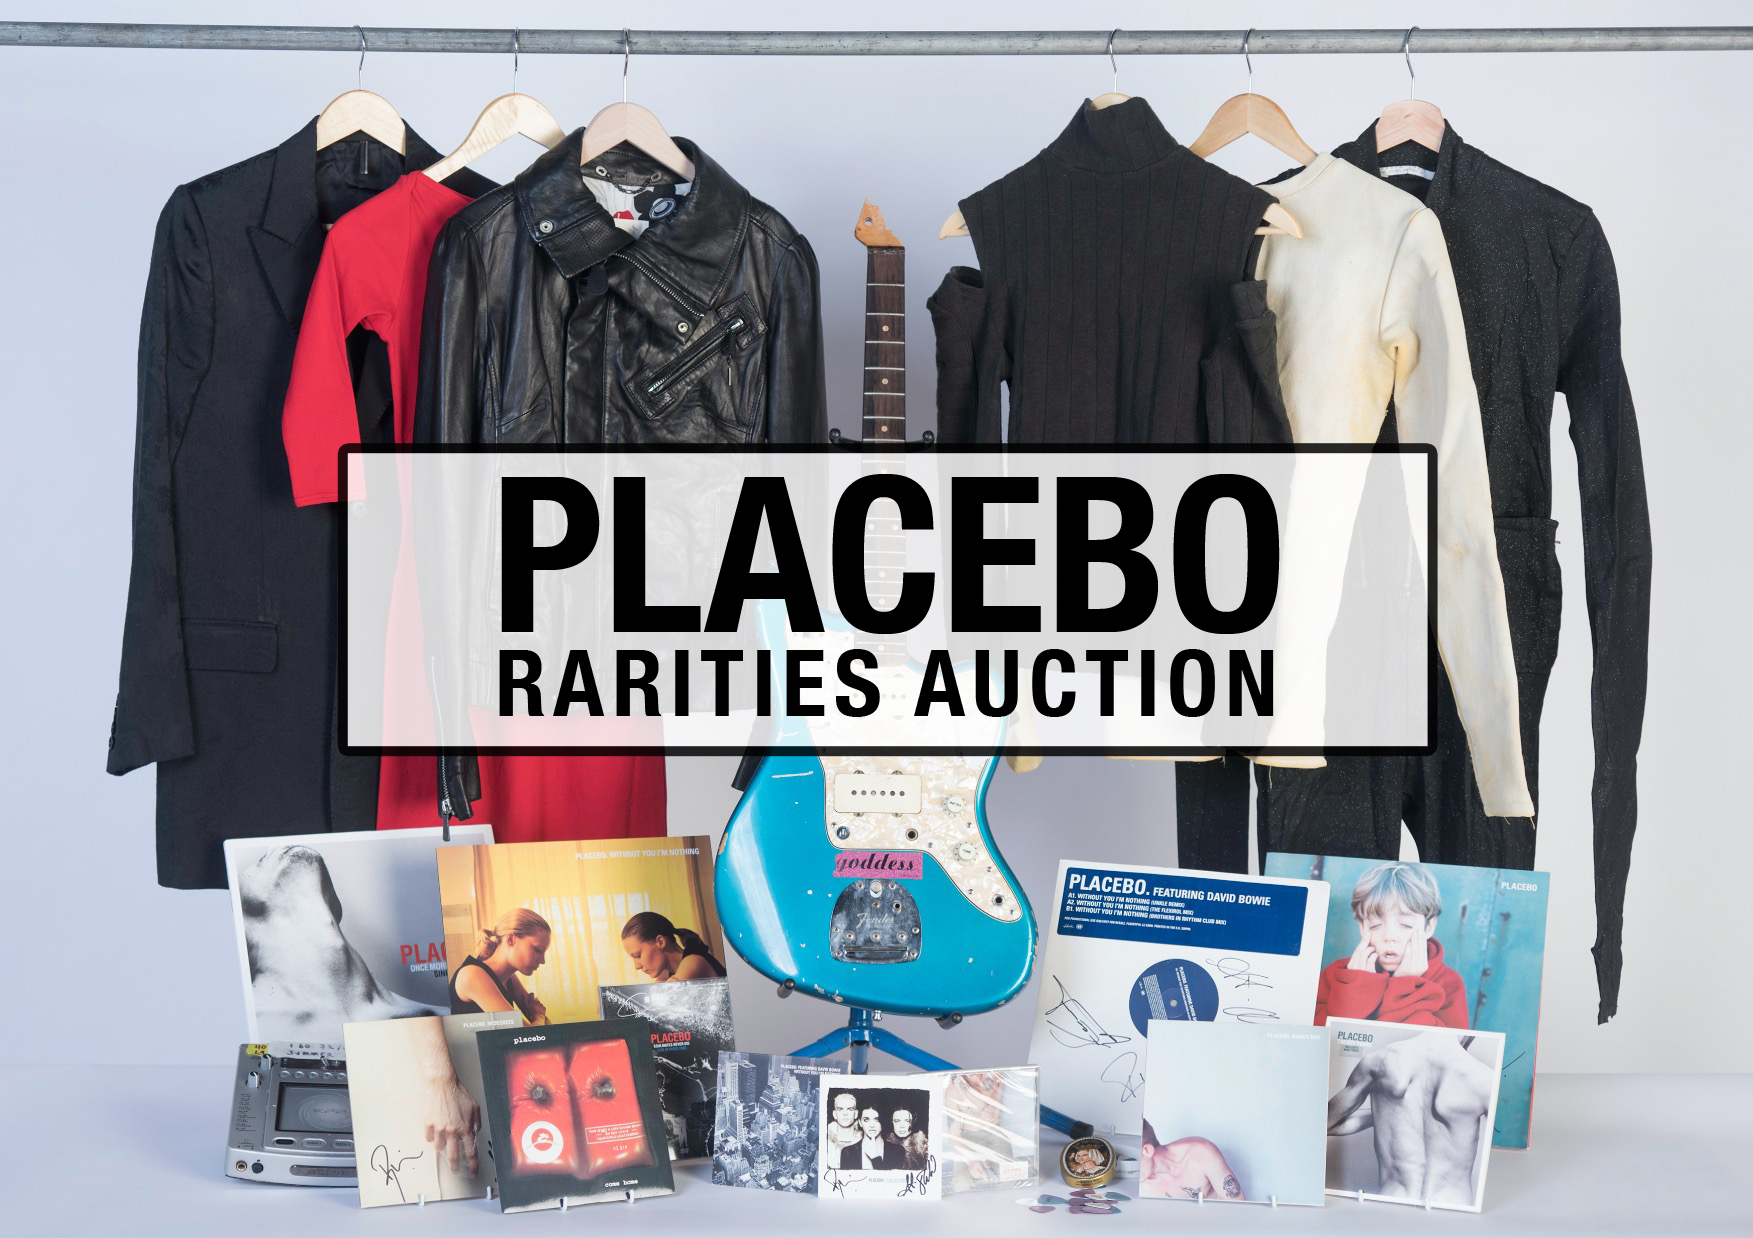 https://assets.umusic.co.uk/umc/Placebo/auction2/RA_new.jpg